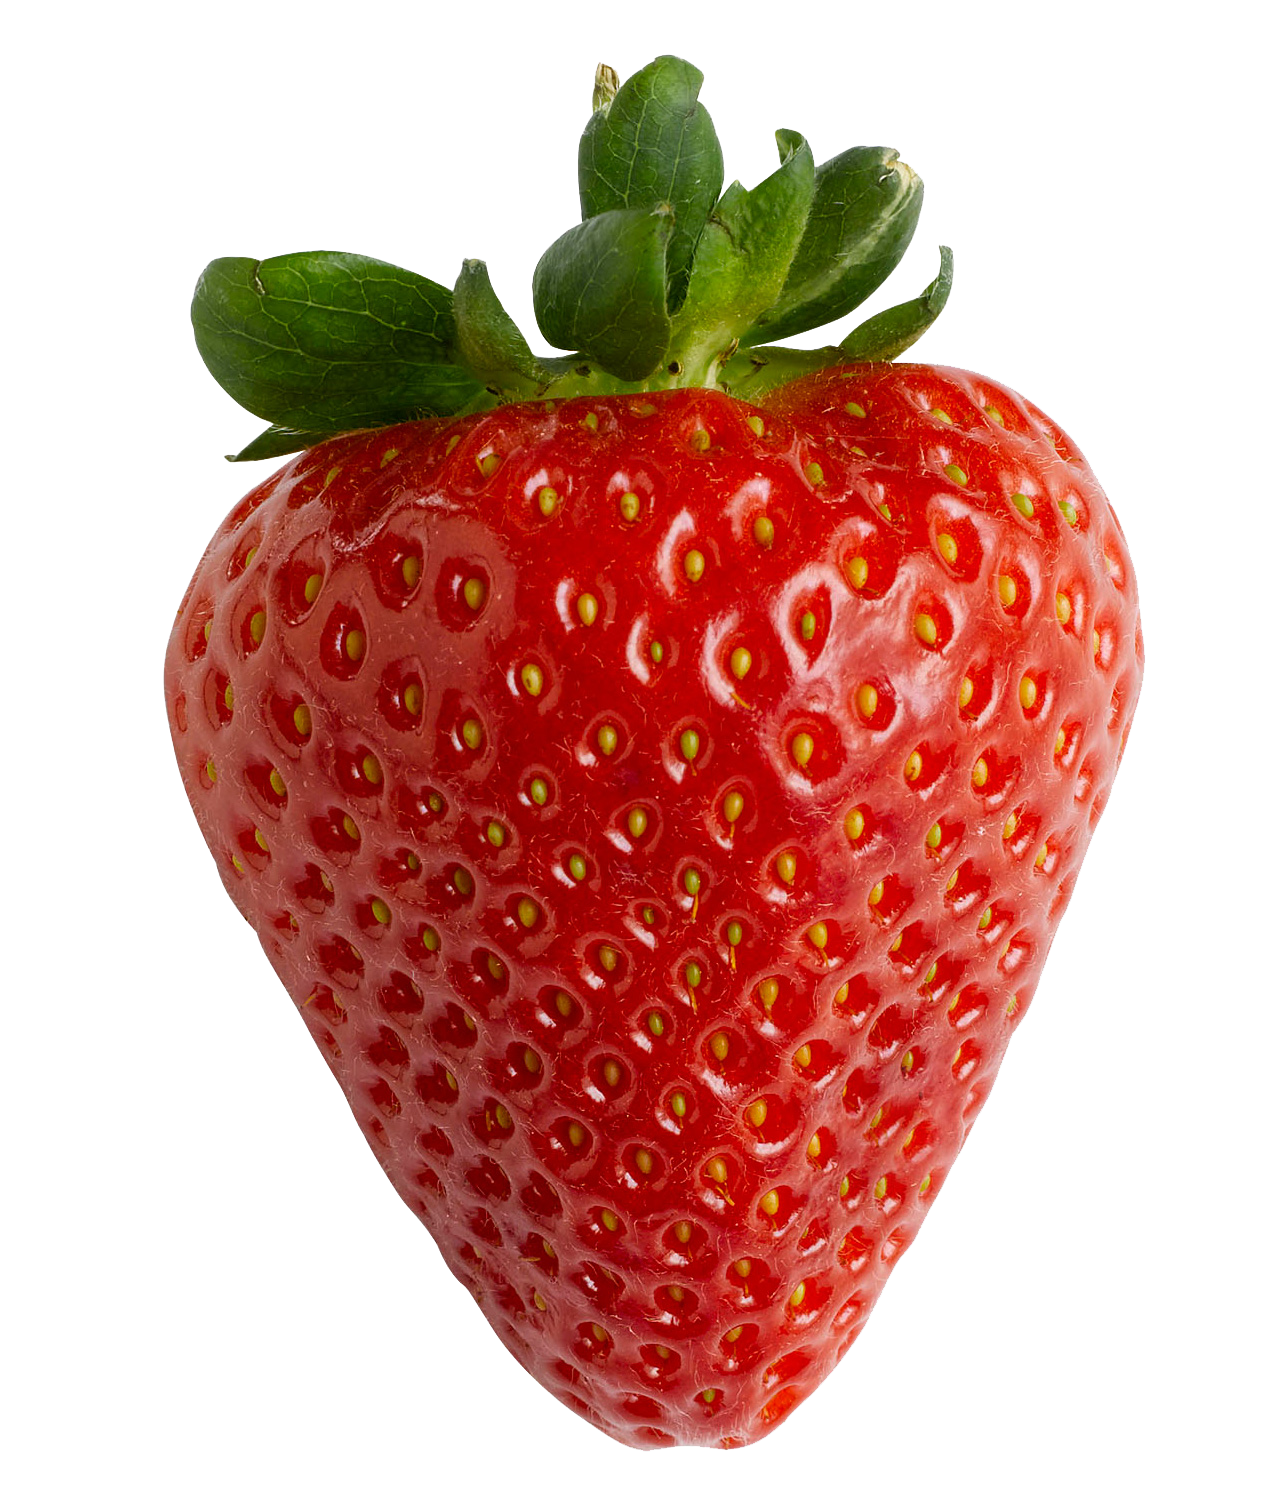 Strawberry PNG Transparent Images.